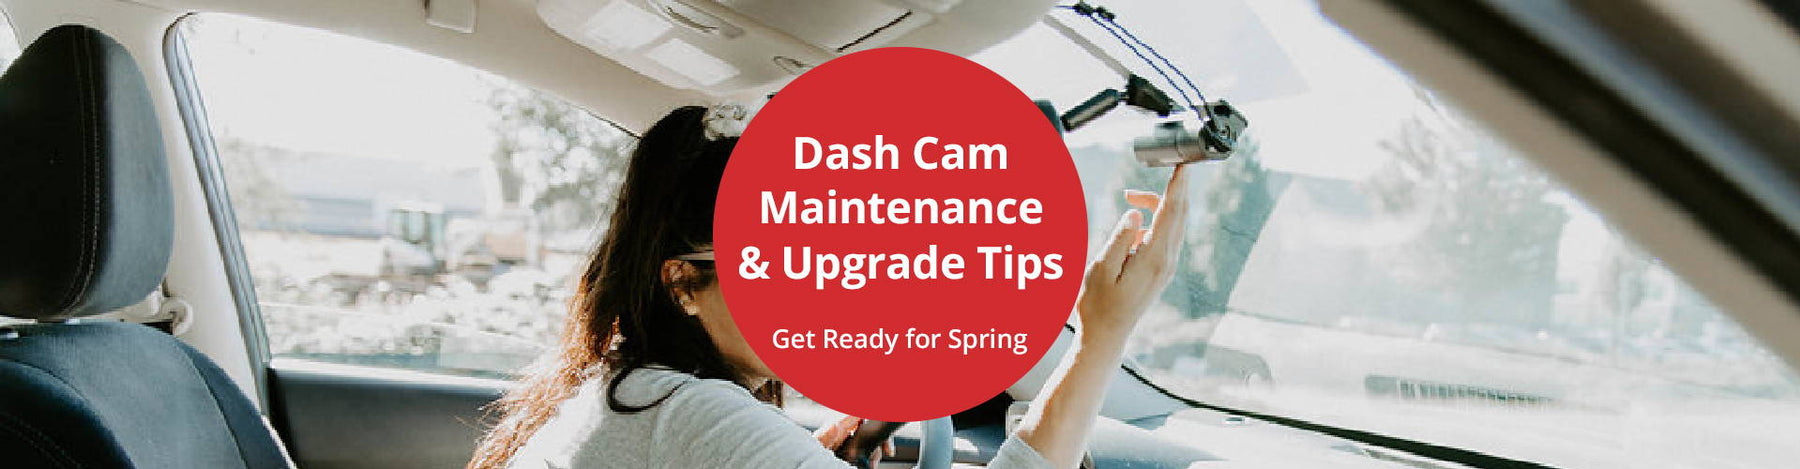 Dash Cam Maintenance and Upgrade Tips